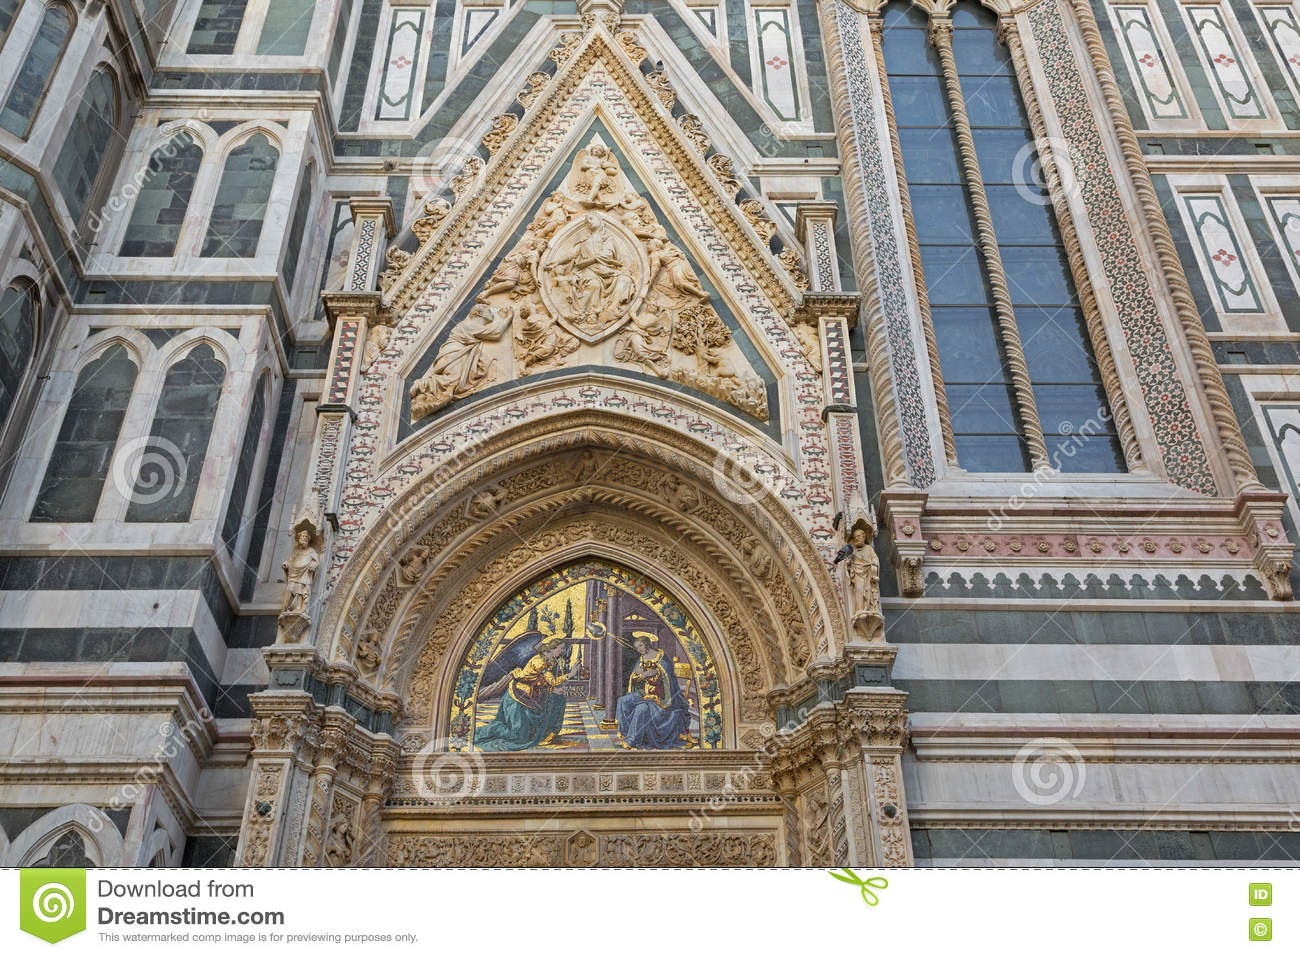 Annunciation mosaic on Almond doors of Florence Cathedral, Italy